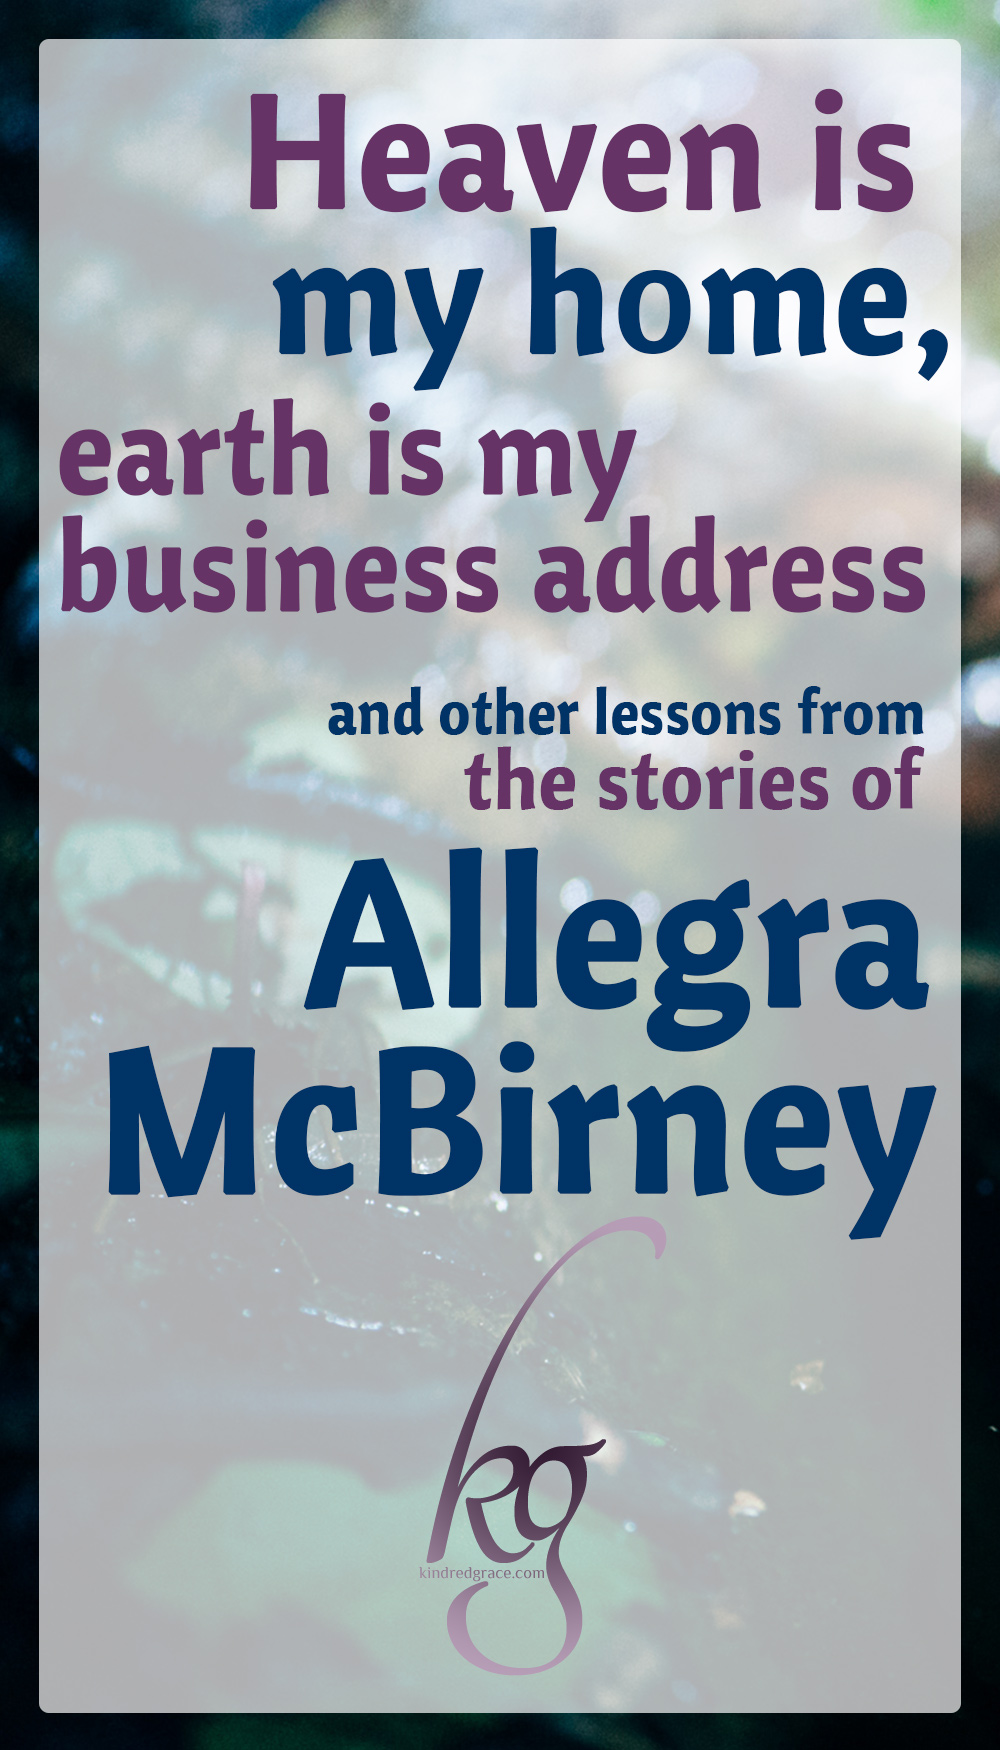 """Tell me, do you like stories about things that really happened? Wonderful things that the Lord did?"" This is the story of the life of Allegra McBirney, a modern-day author, speaker, missionary, hymn writer, and illustrator. via @KindredGrace"